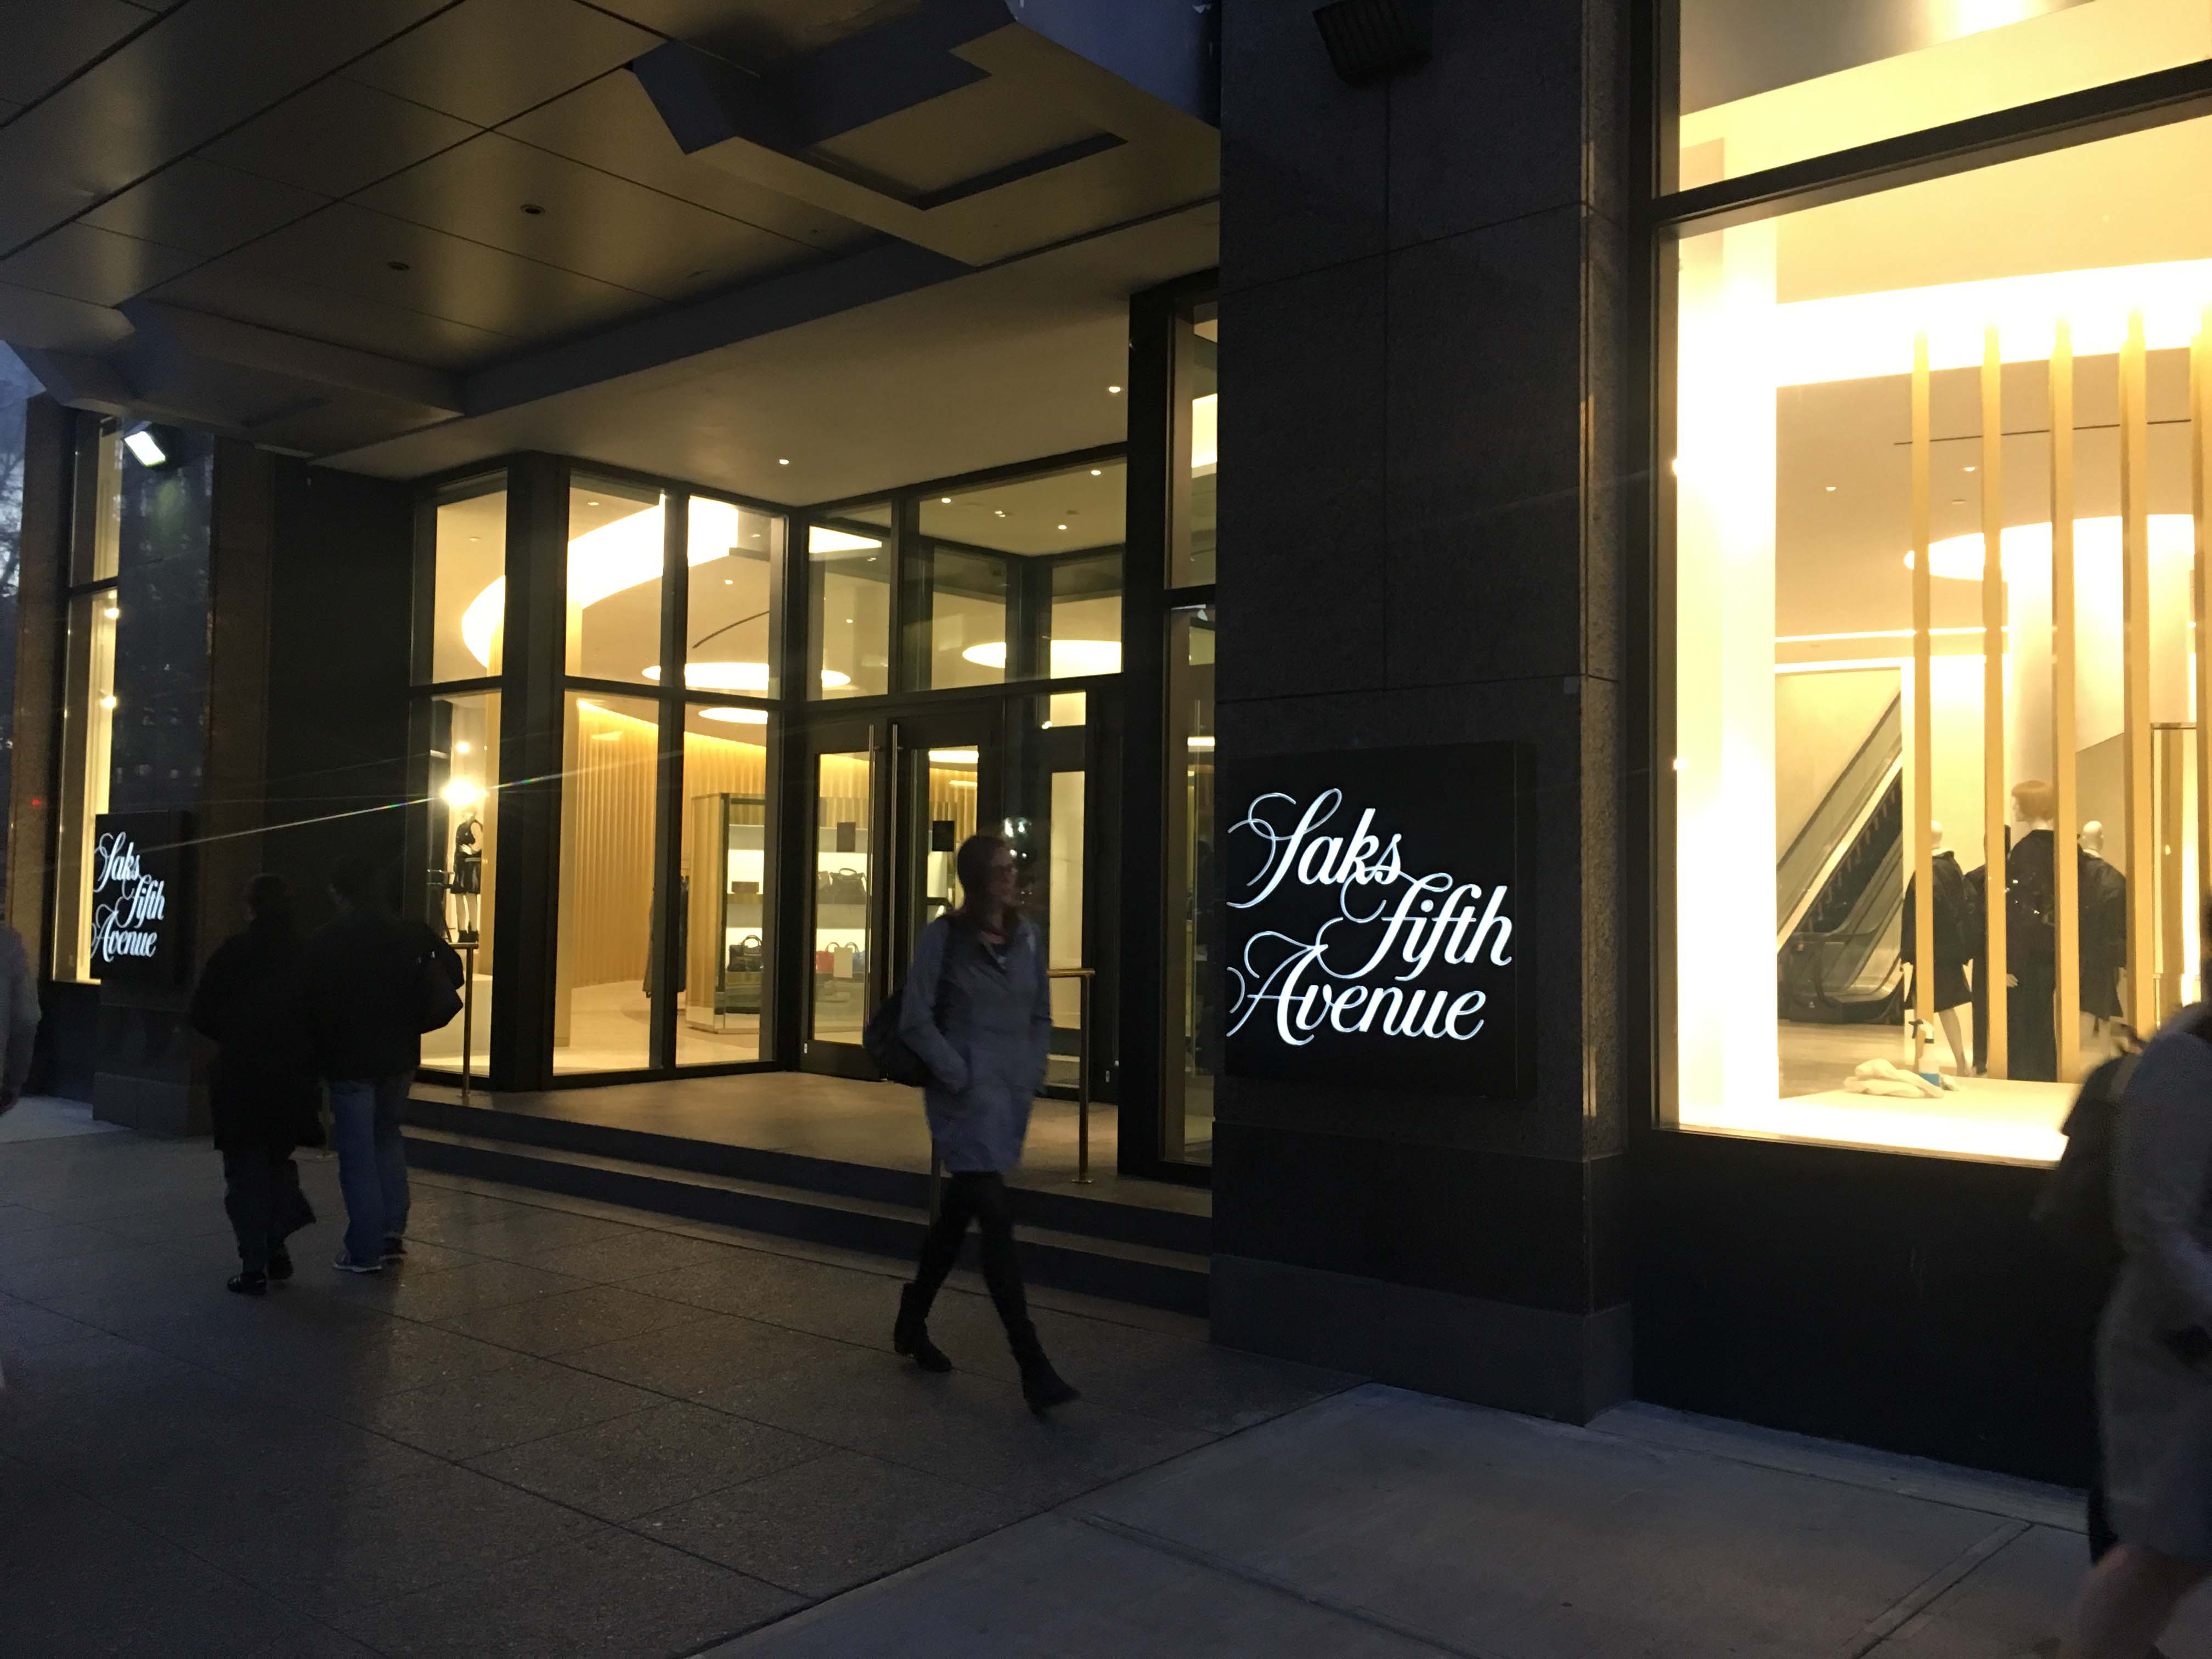 saks-fifth-ave-liberty-entrance-b